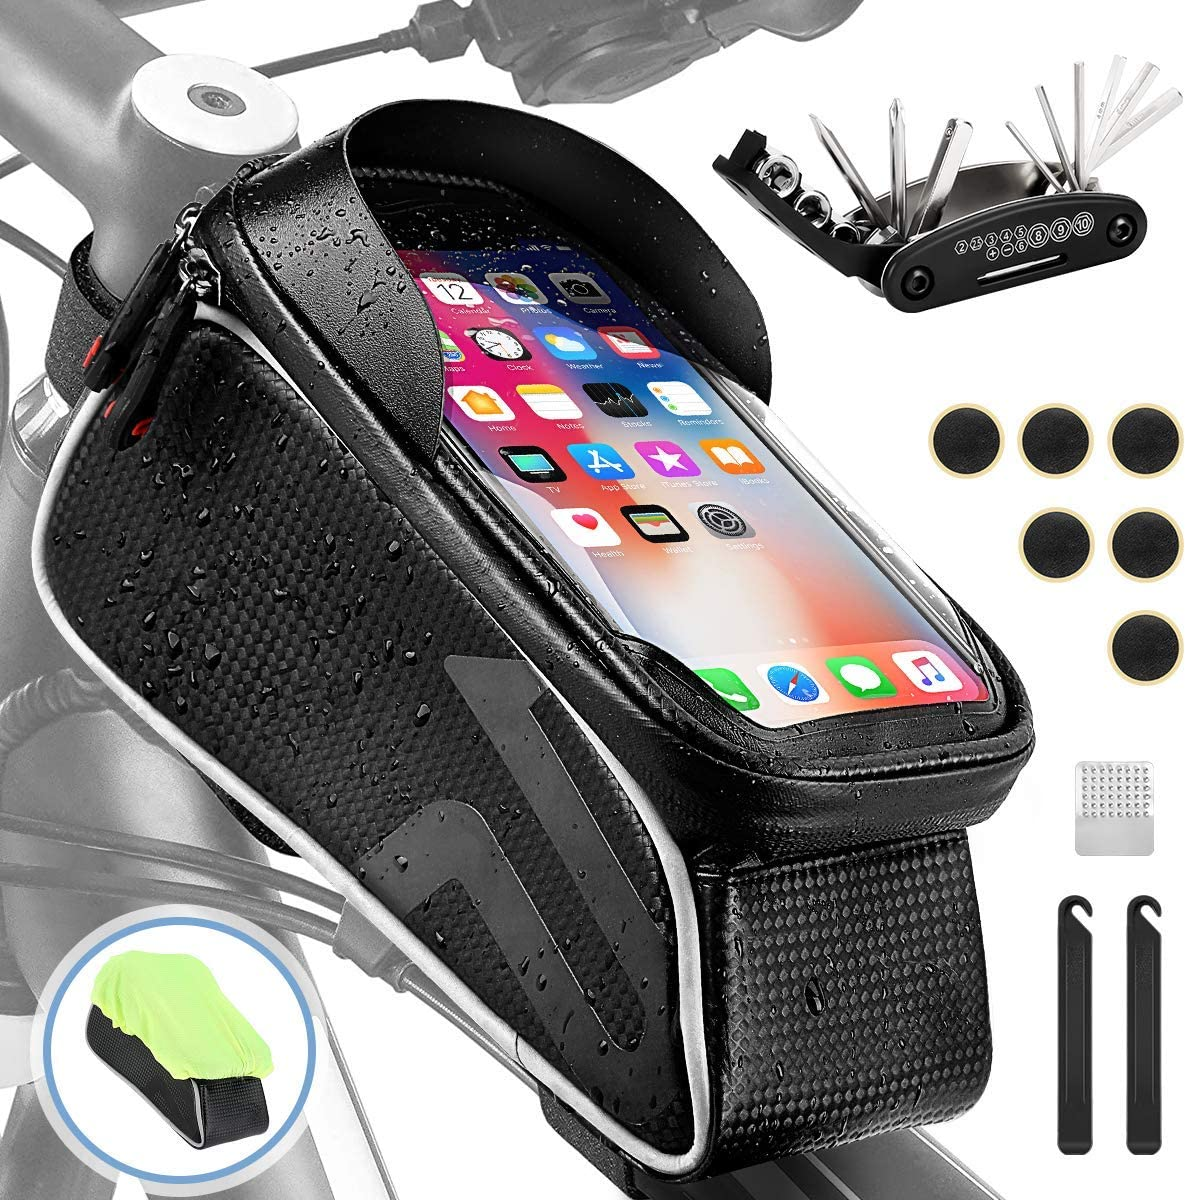 AGPTEK Waterproof Bike Frame Bag, Cycling Bag with Bicycle Repair Tool Kits, Bicycle Top Tube Cycling Bag with TPU Touch Screen Cell Phone Supports Face ID, for iPhone, Samsung, Below 6.5in